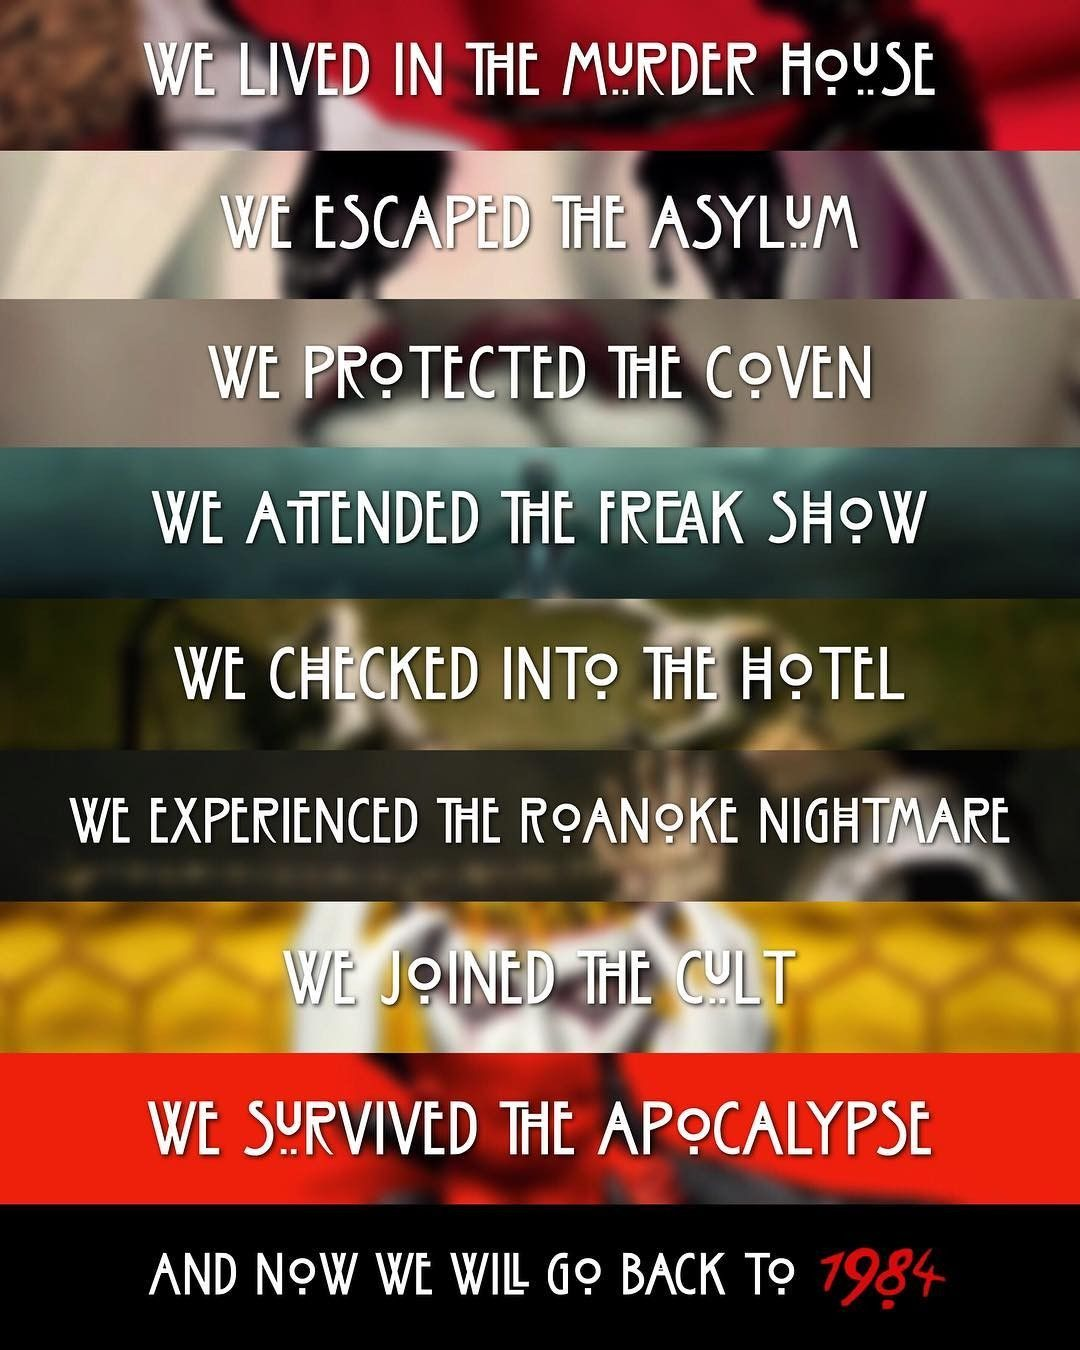 American Horror Story seasons. And now we will go back to 1984.